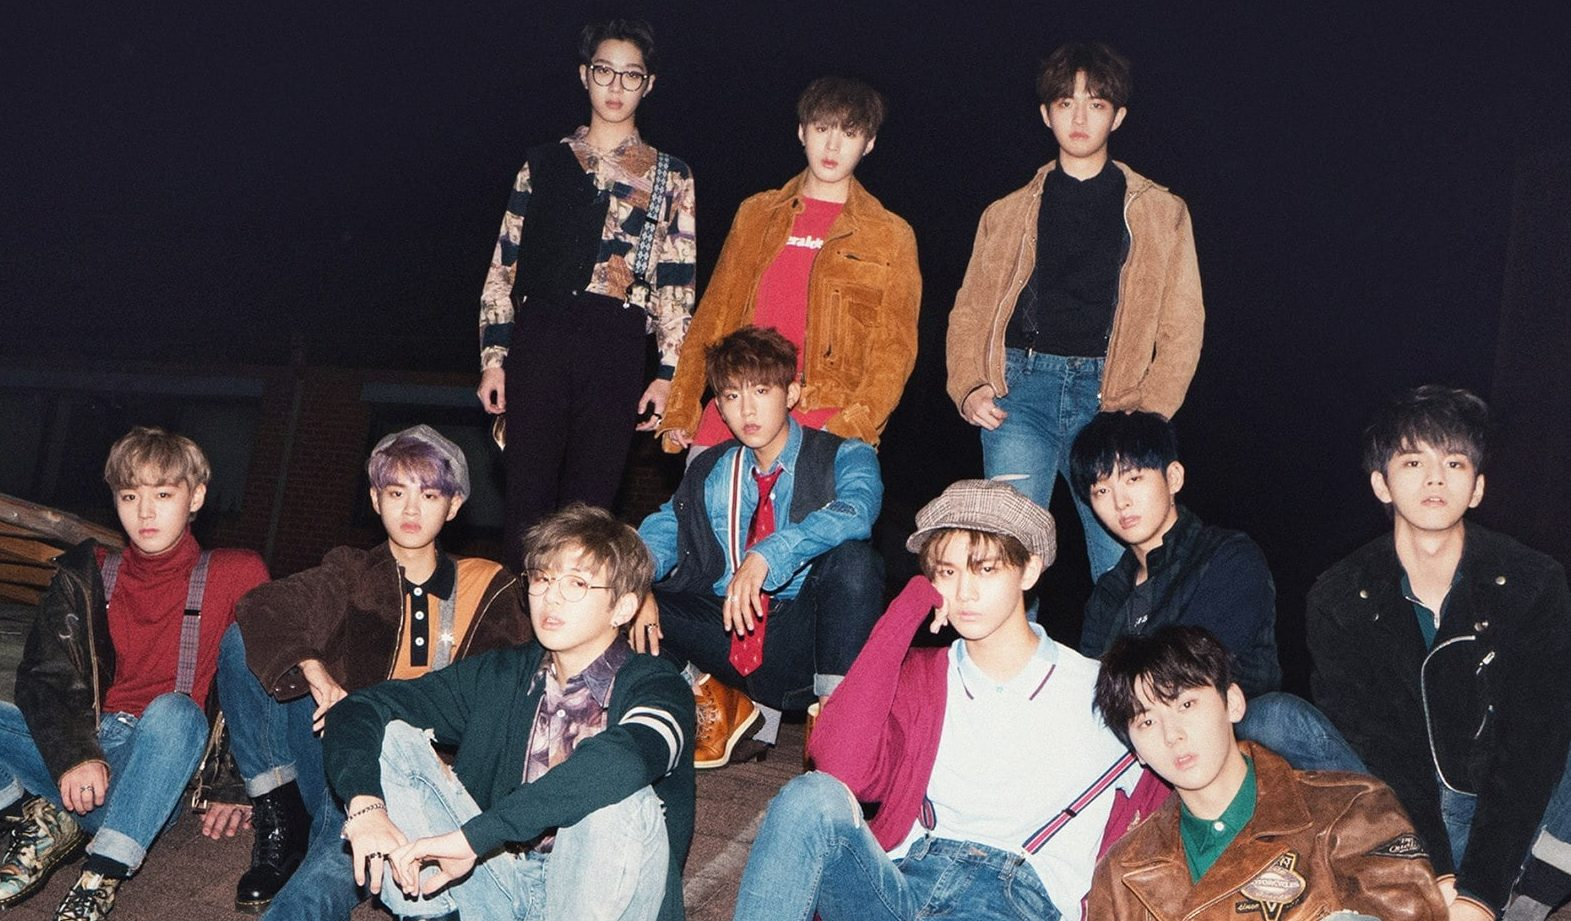 Mnet To Launch Exclusive Comeback Show For Wanna One